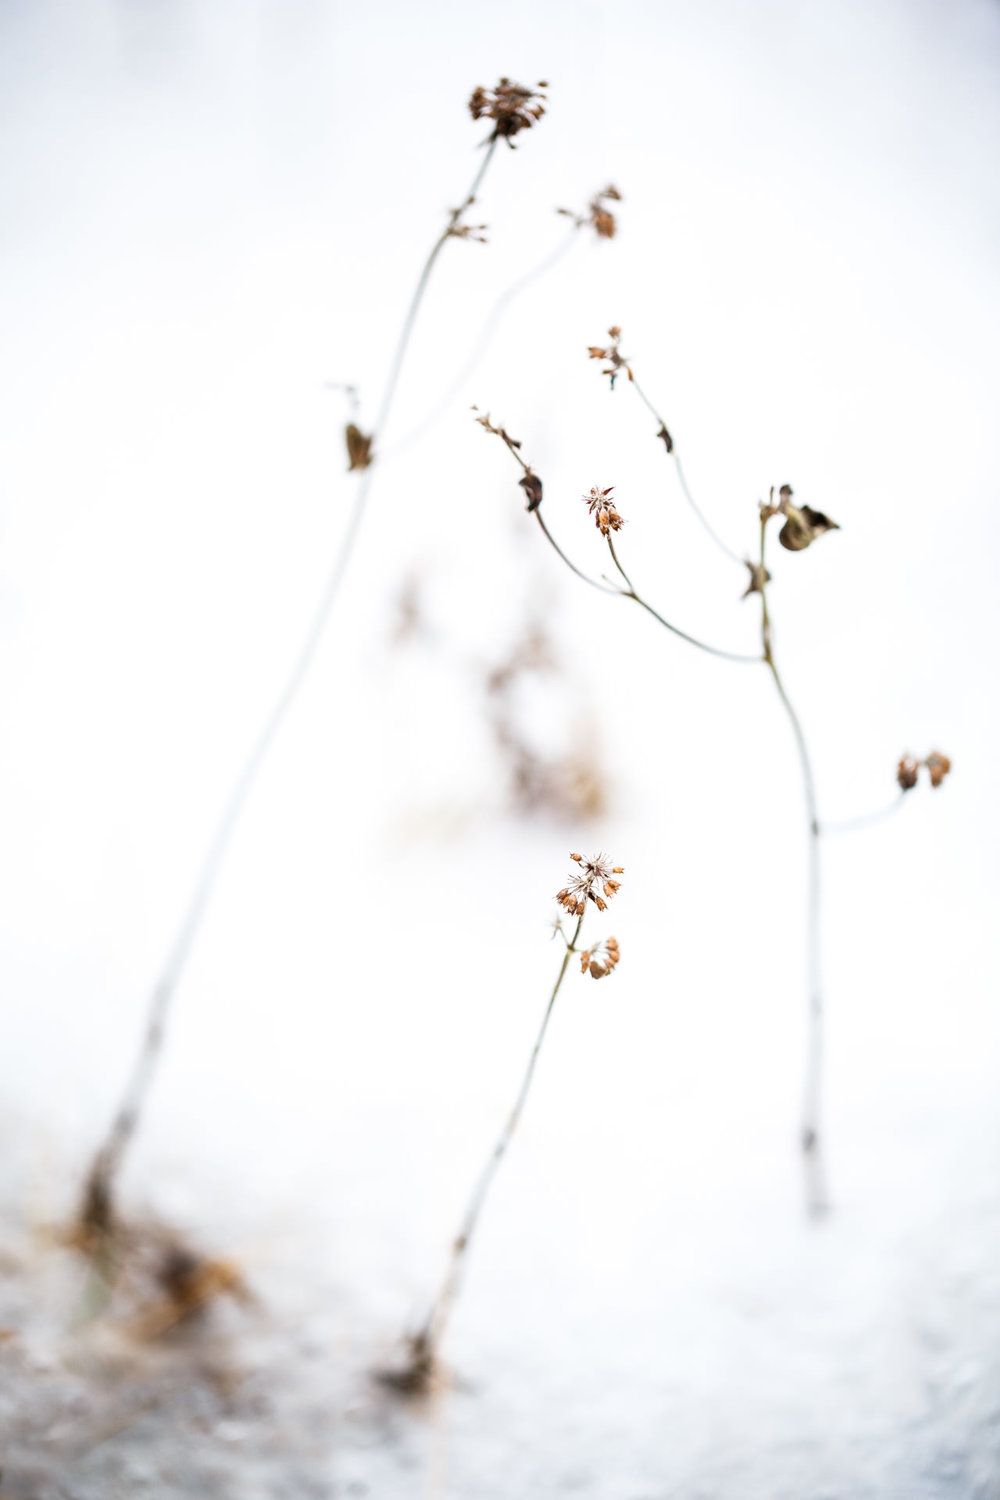 Here I was interested in the arrangement of the flowers surrounded by frost. I went with a shallow depth of field as I wanted to isolate the details from the background.